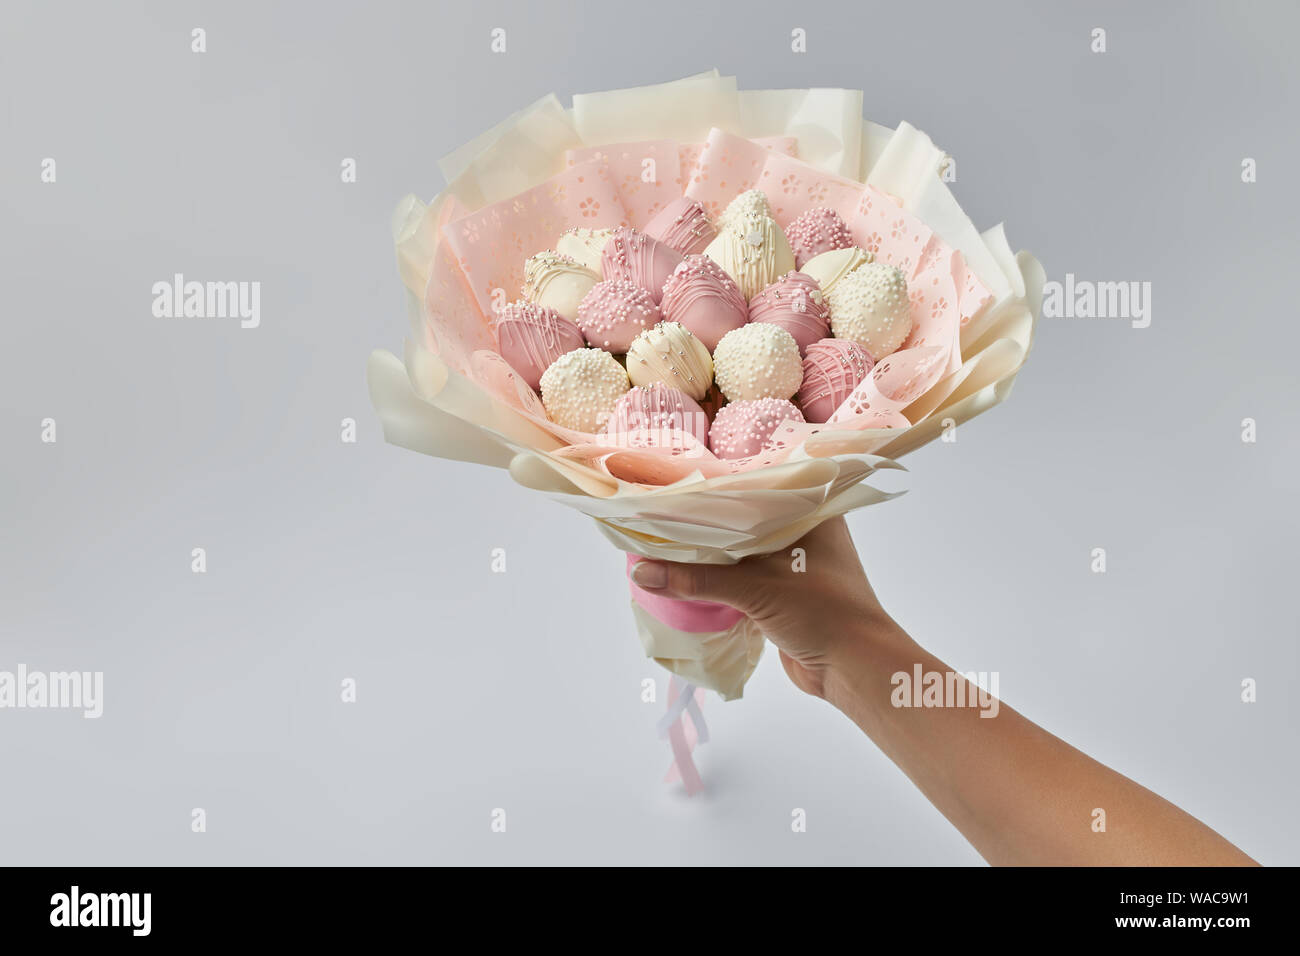 Beautiful Tender Bouquet Consisting Of Ripe Strawberries Covered With White And Pink Chocolate In A Hand Of Woman Stock Photo Alamy